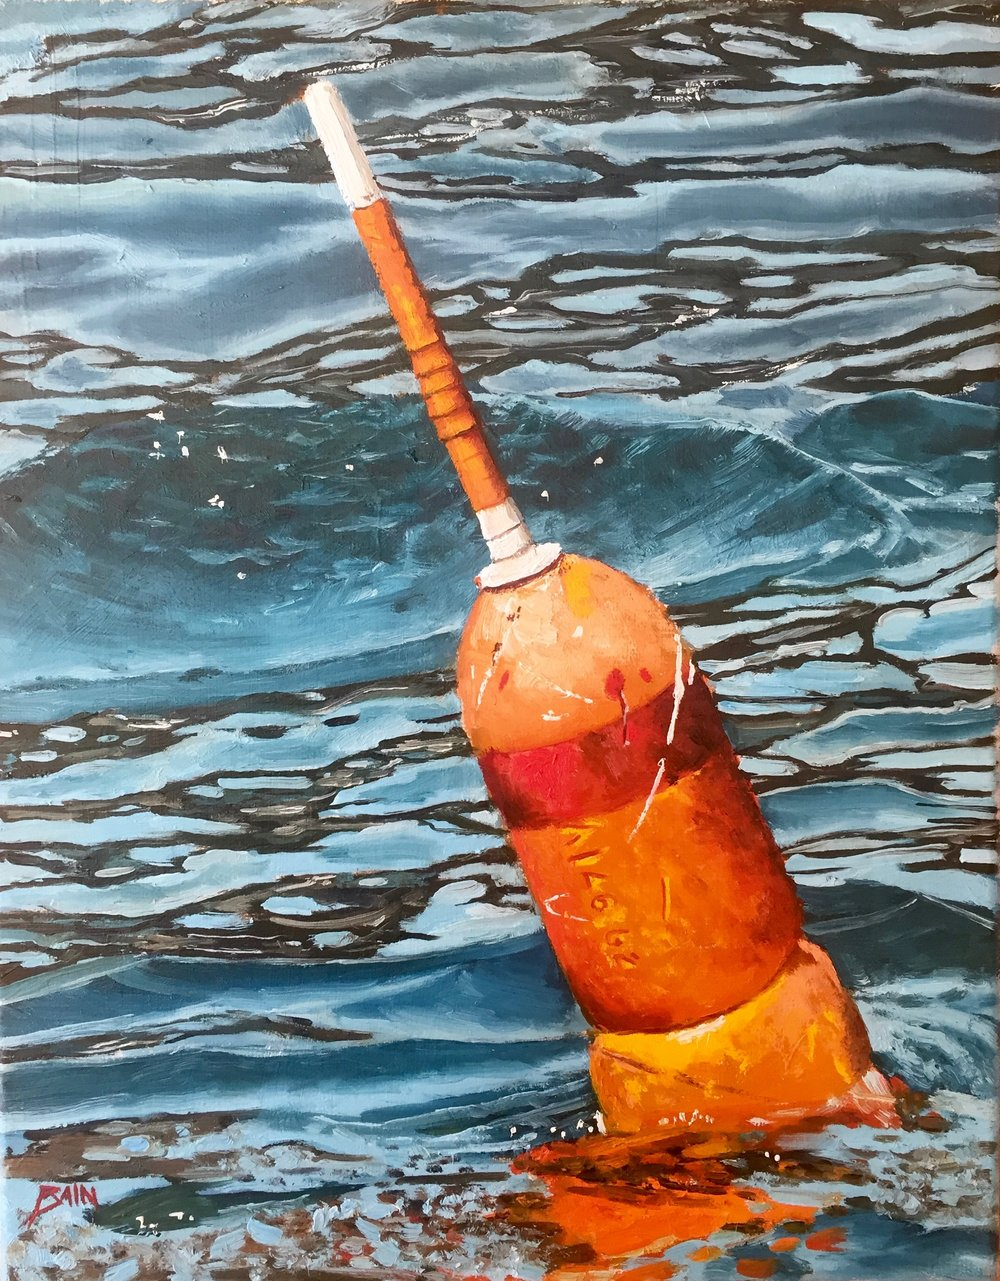 """Orange Buoy"", oil on canvas, 11"" x 14"", $525 (framed)"